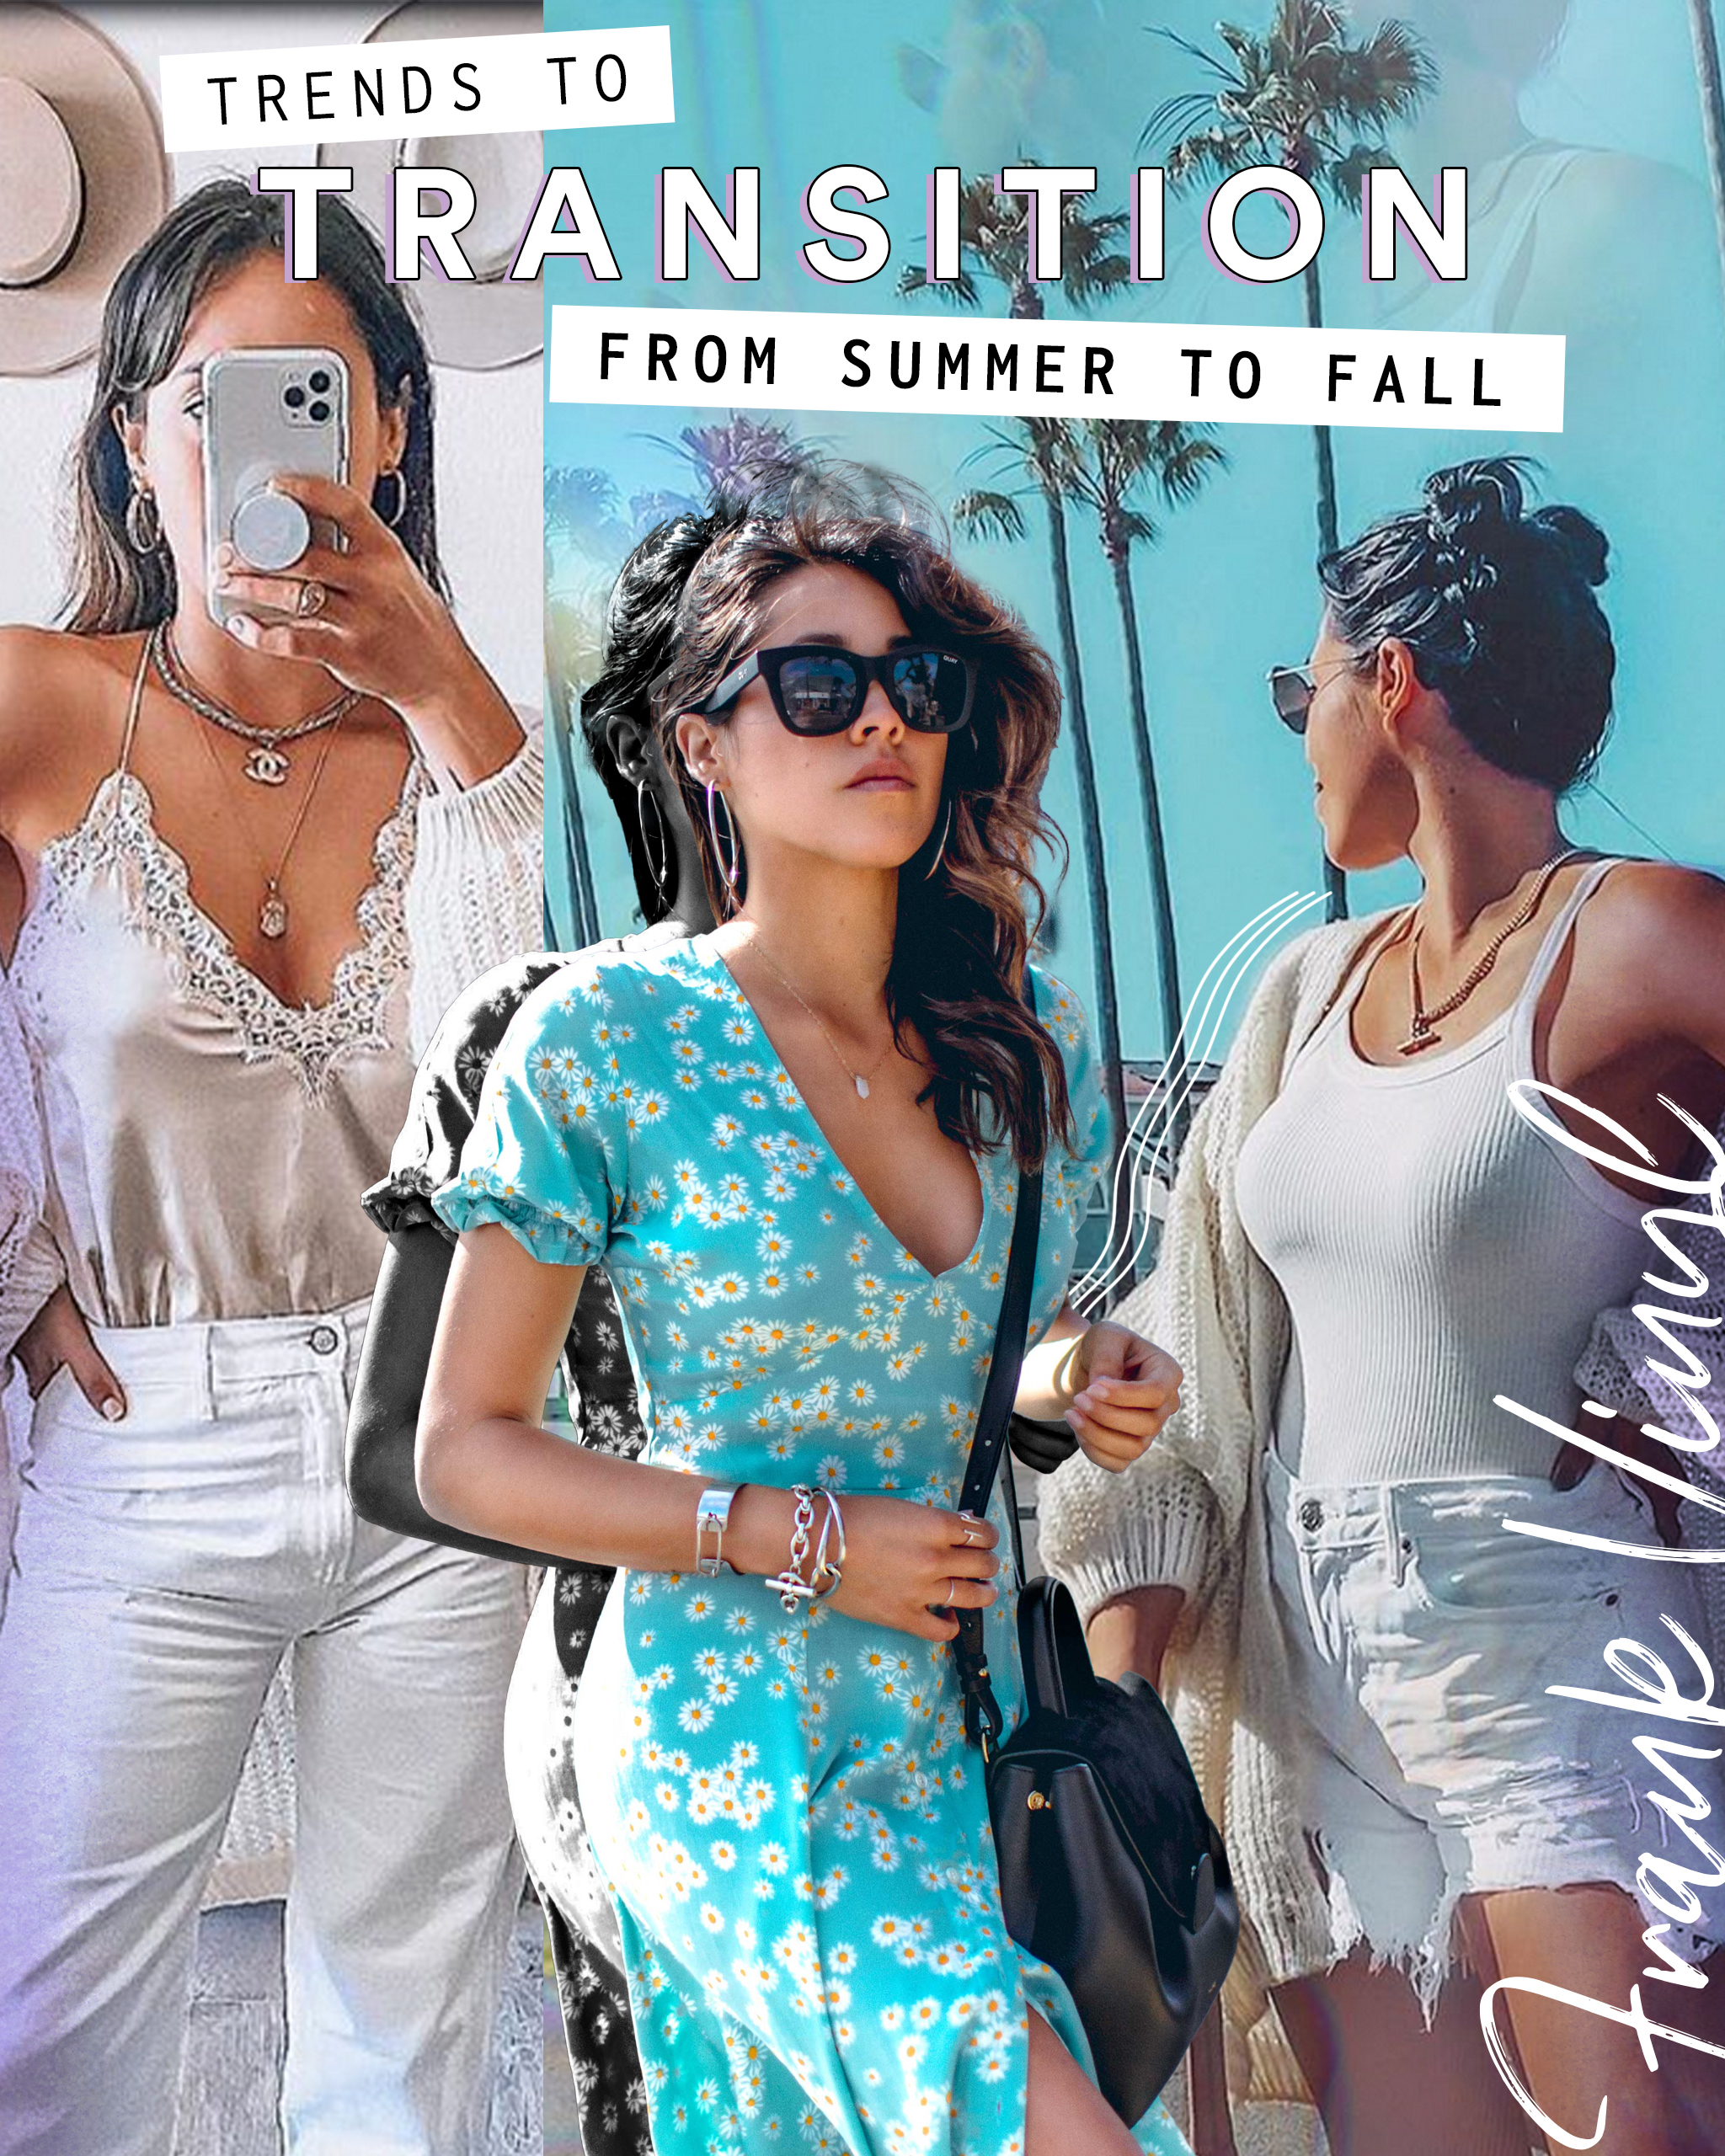 Fall Trends: How to Transition from Summer to Fall